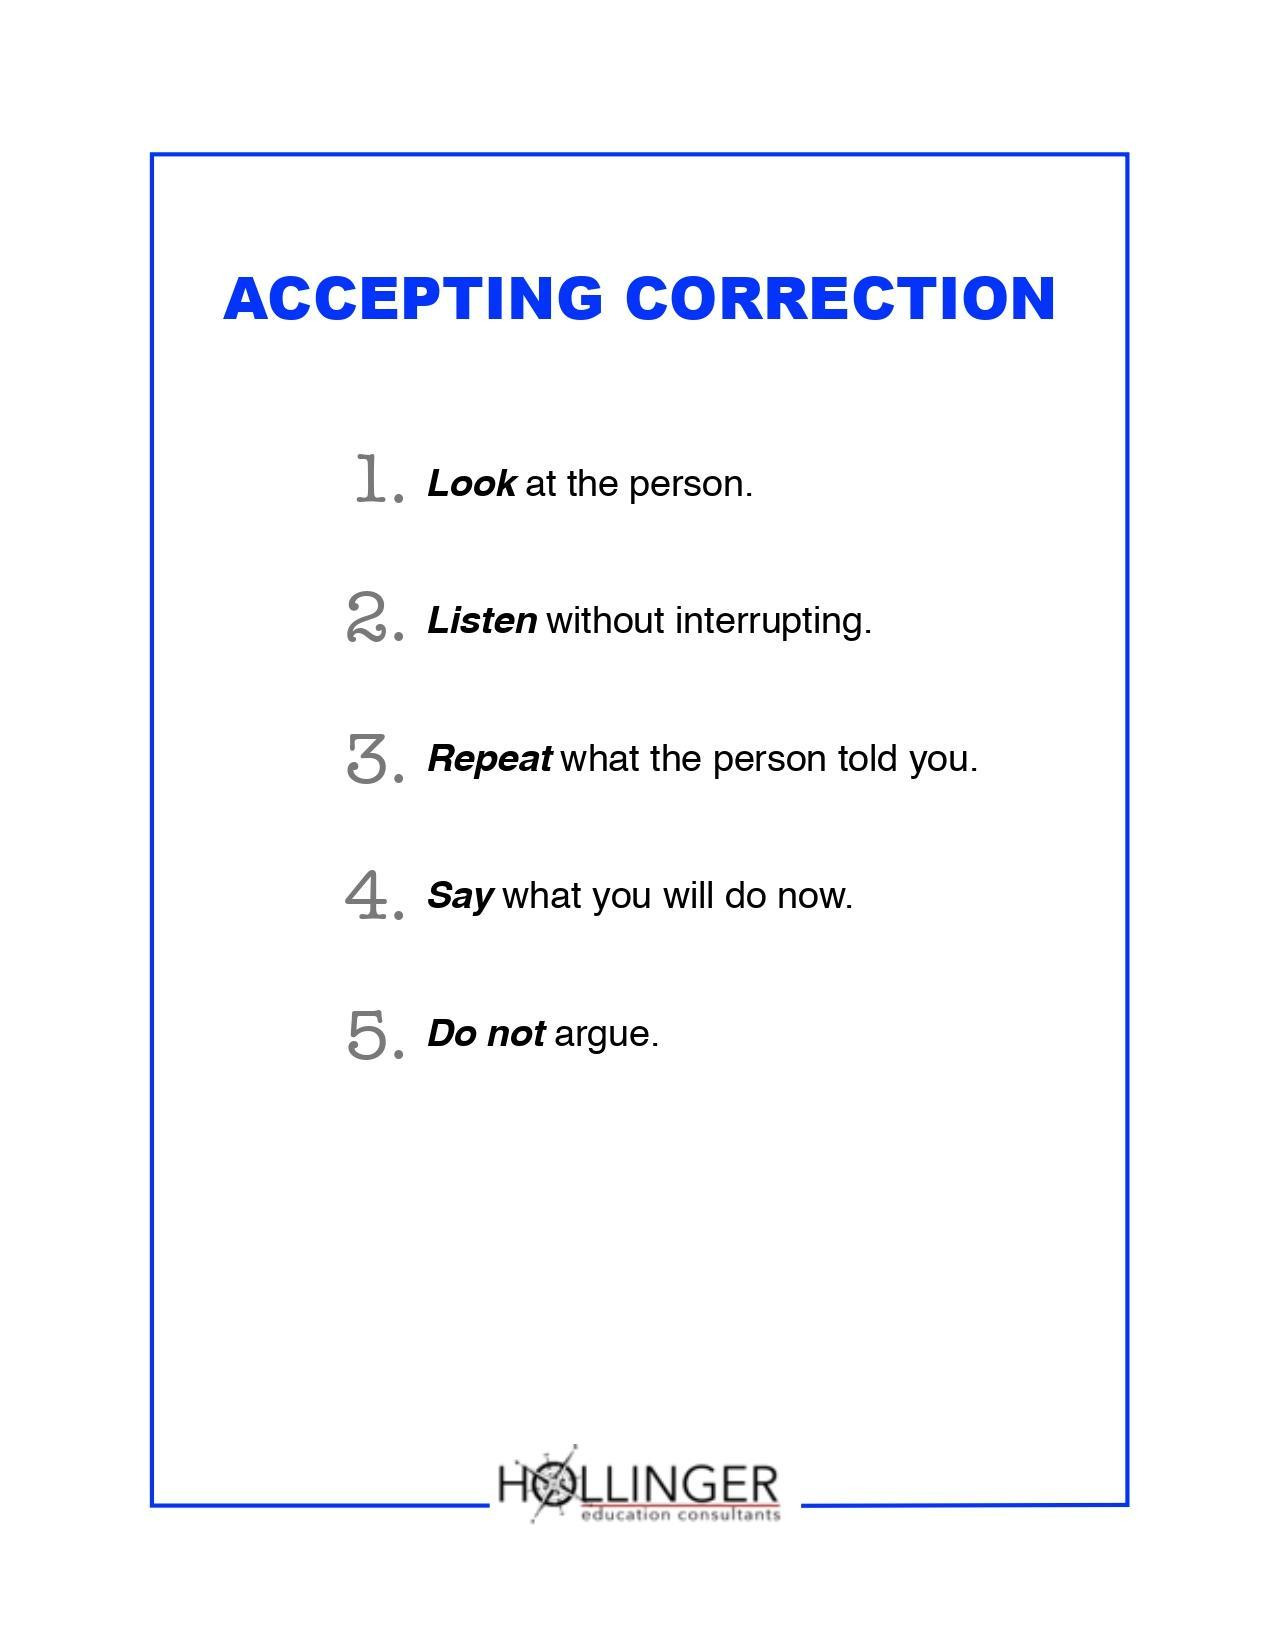 Project RESSPECT: Accepting Correction